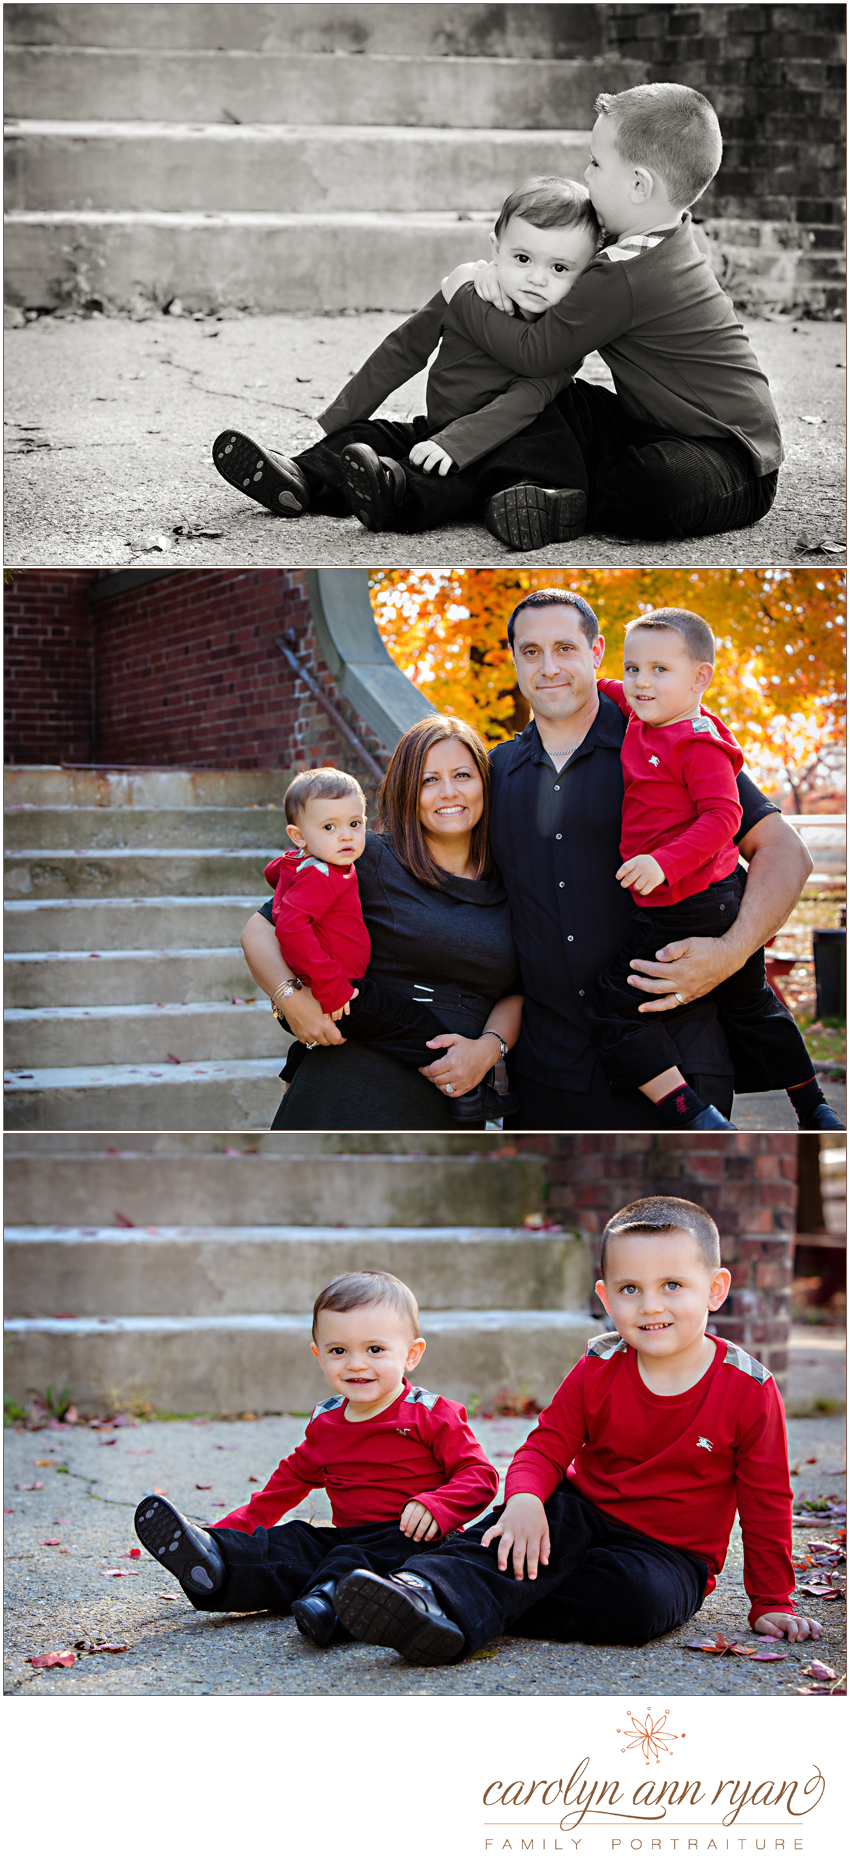 Waxhaw Family Photogapher Carolyn Ann Ryan shares beautiful and classic fall family portraits with a red theme